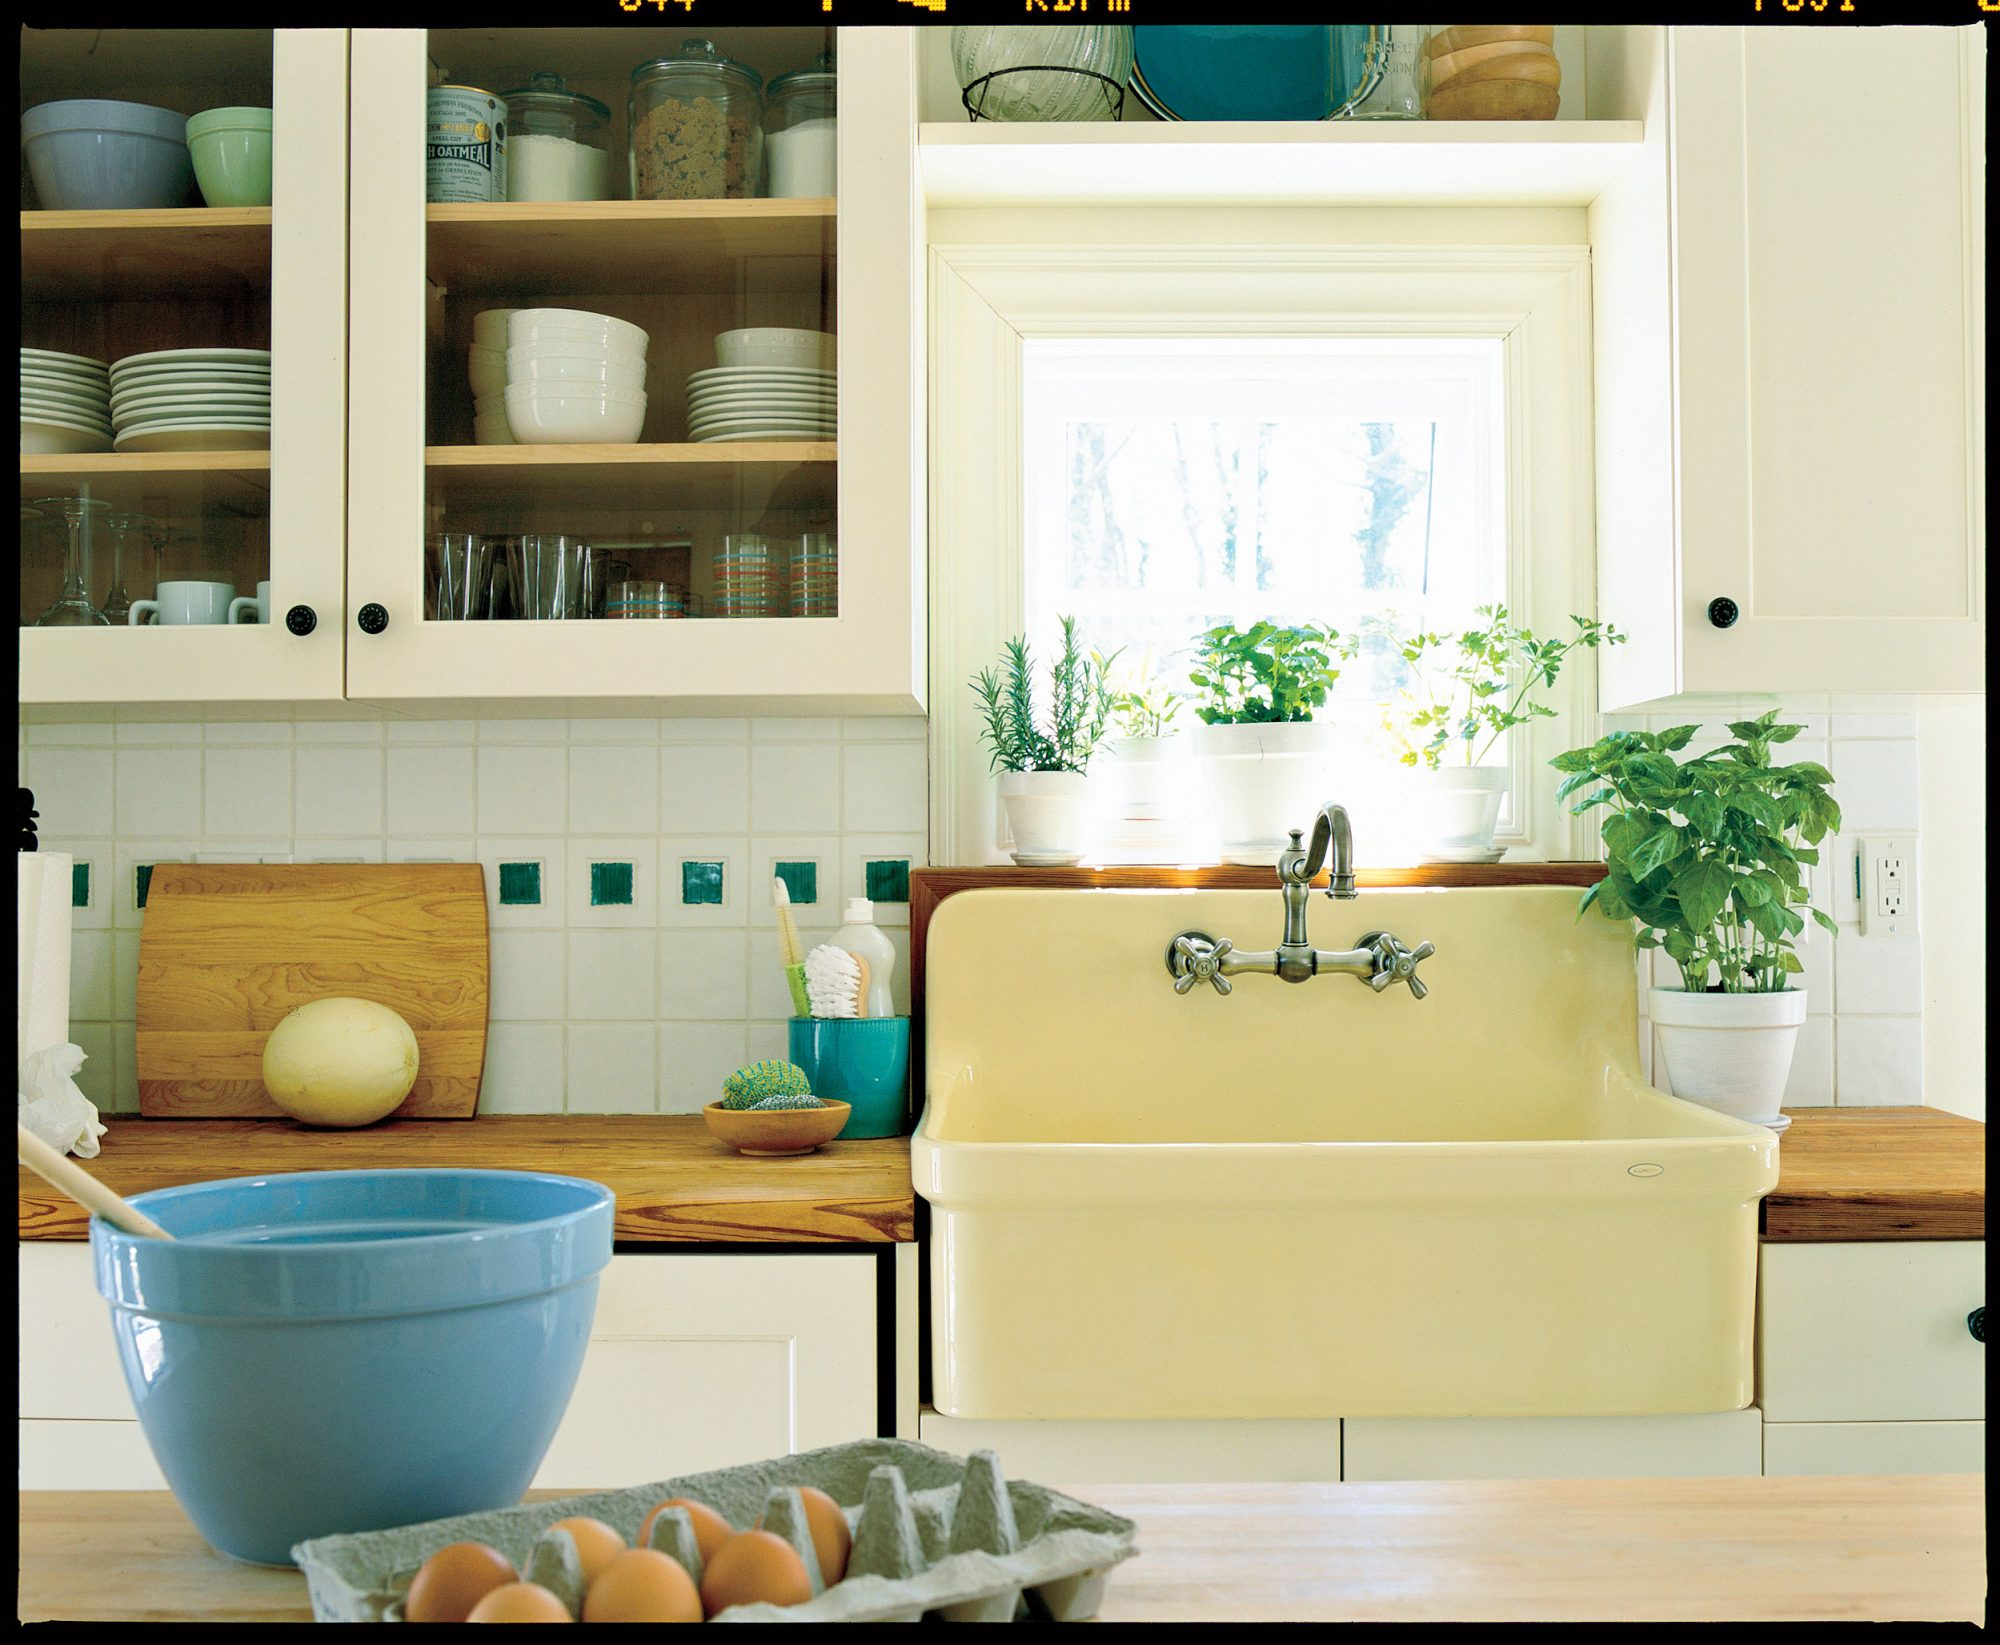 Farm Kitchen Remodeling Ideas: Farm-Style Sink